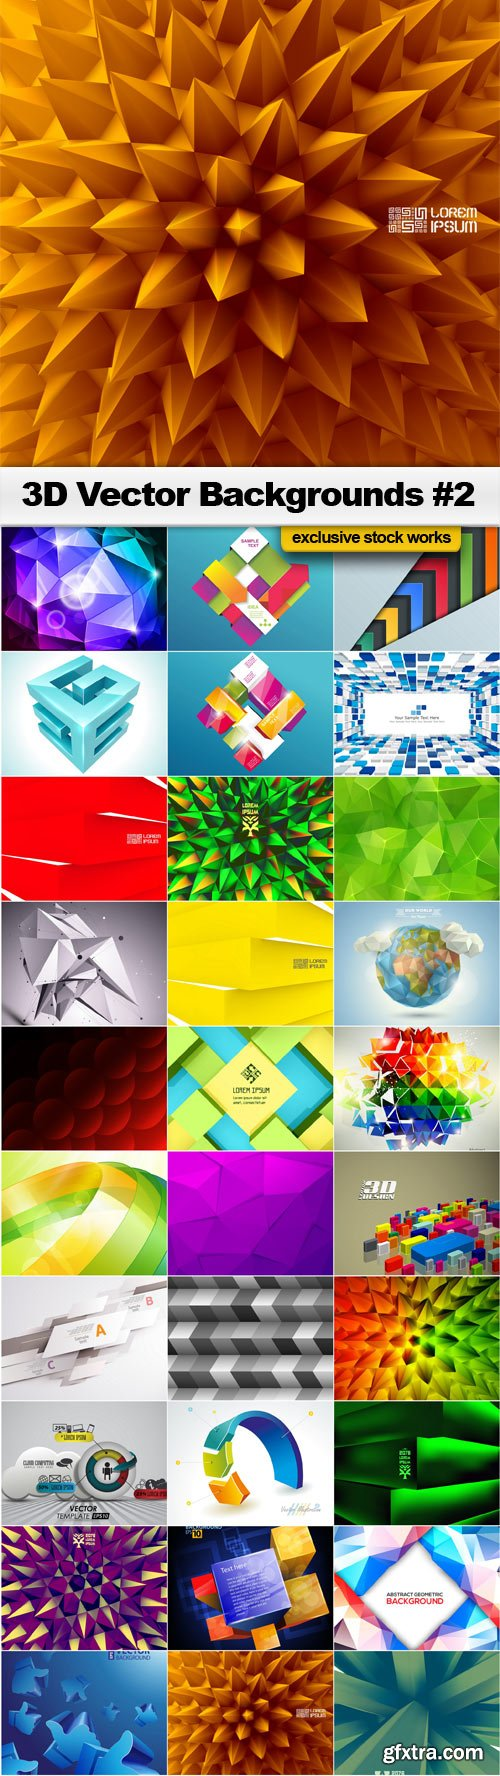 3D Vector Backgrounds #2 - 30x EPS